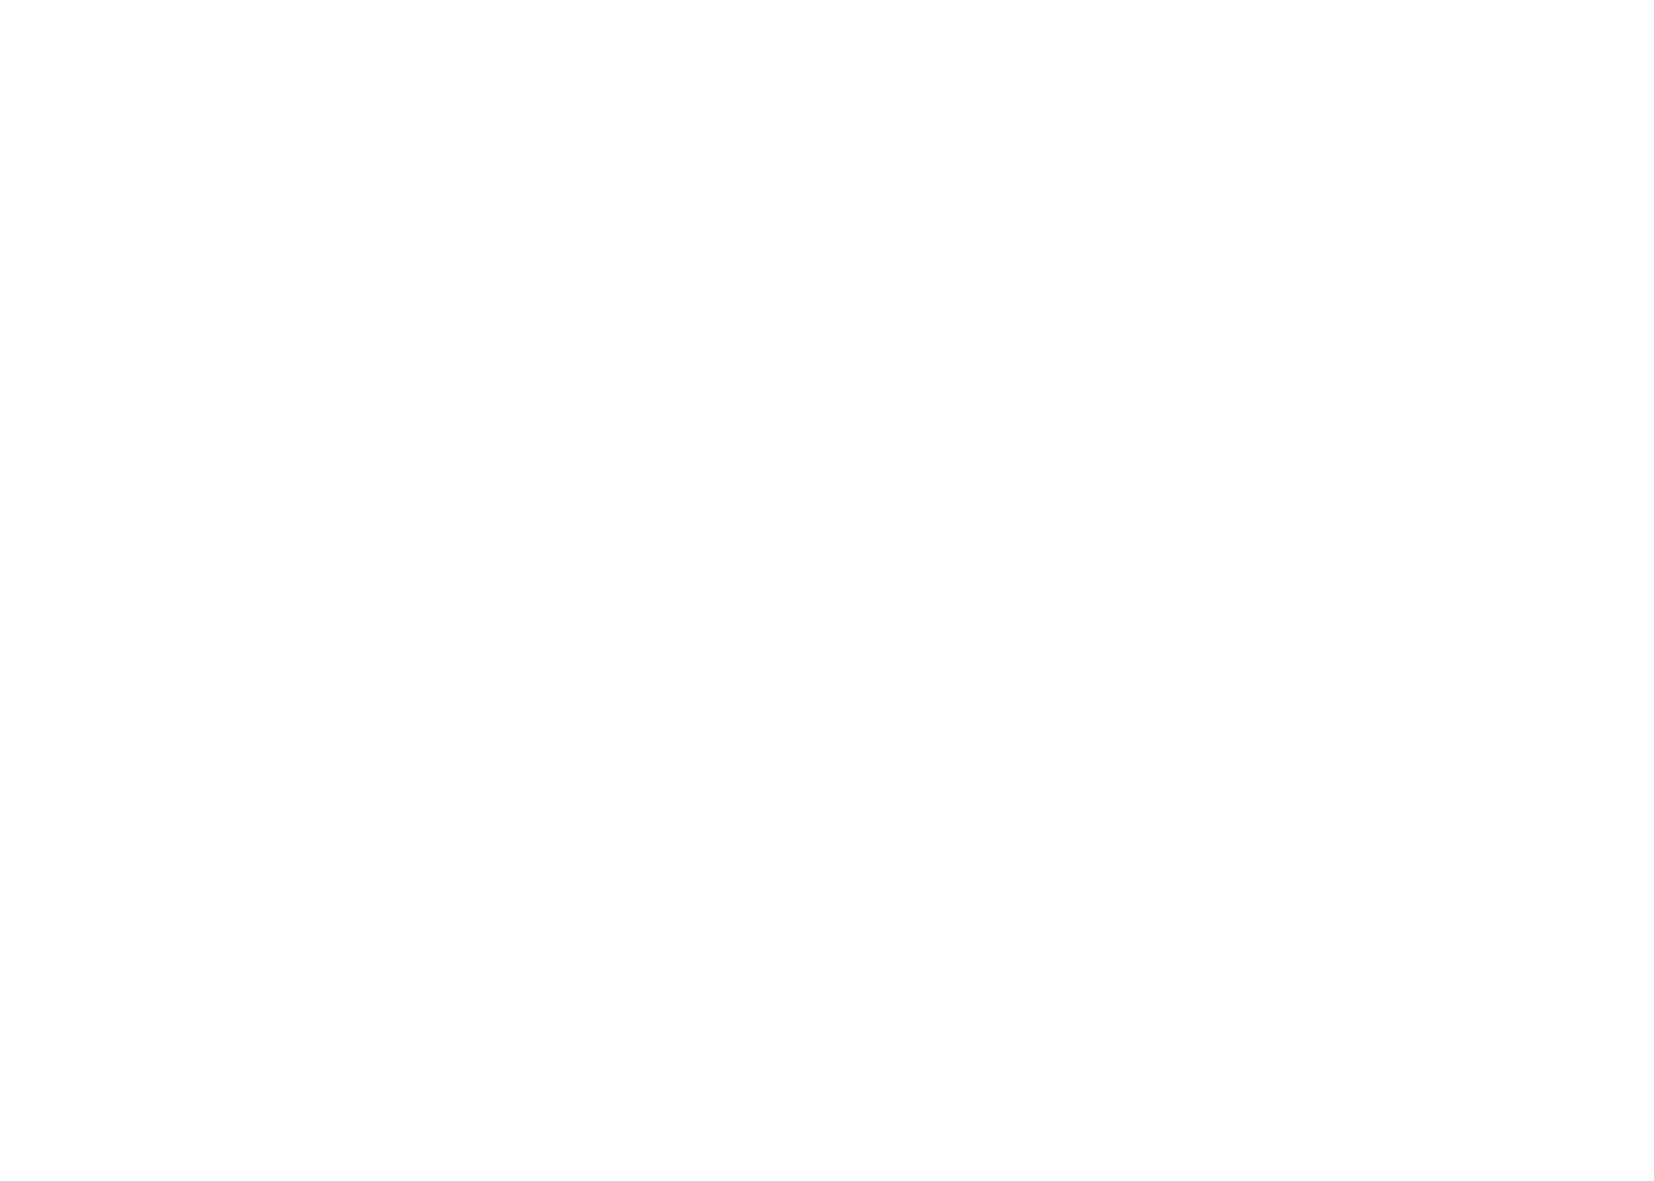 lasa international film festival award 2020 laurel